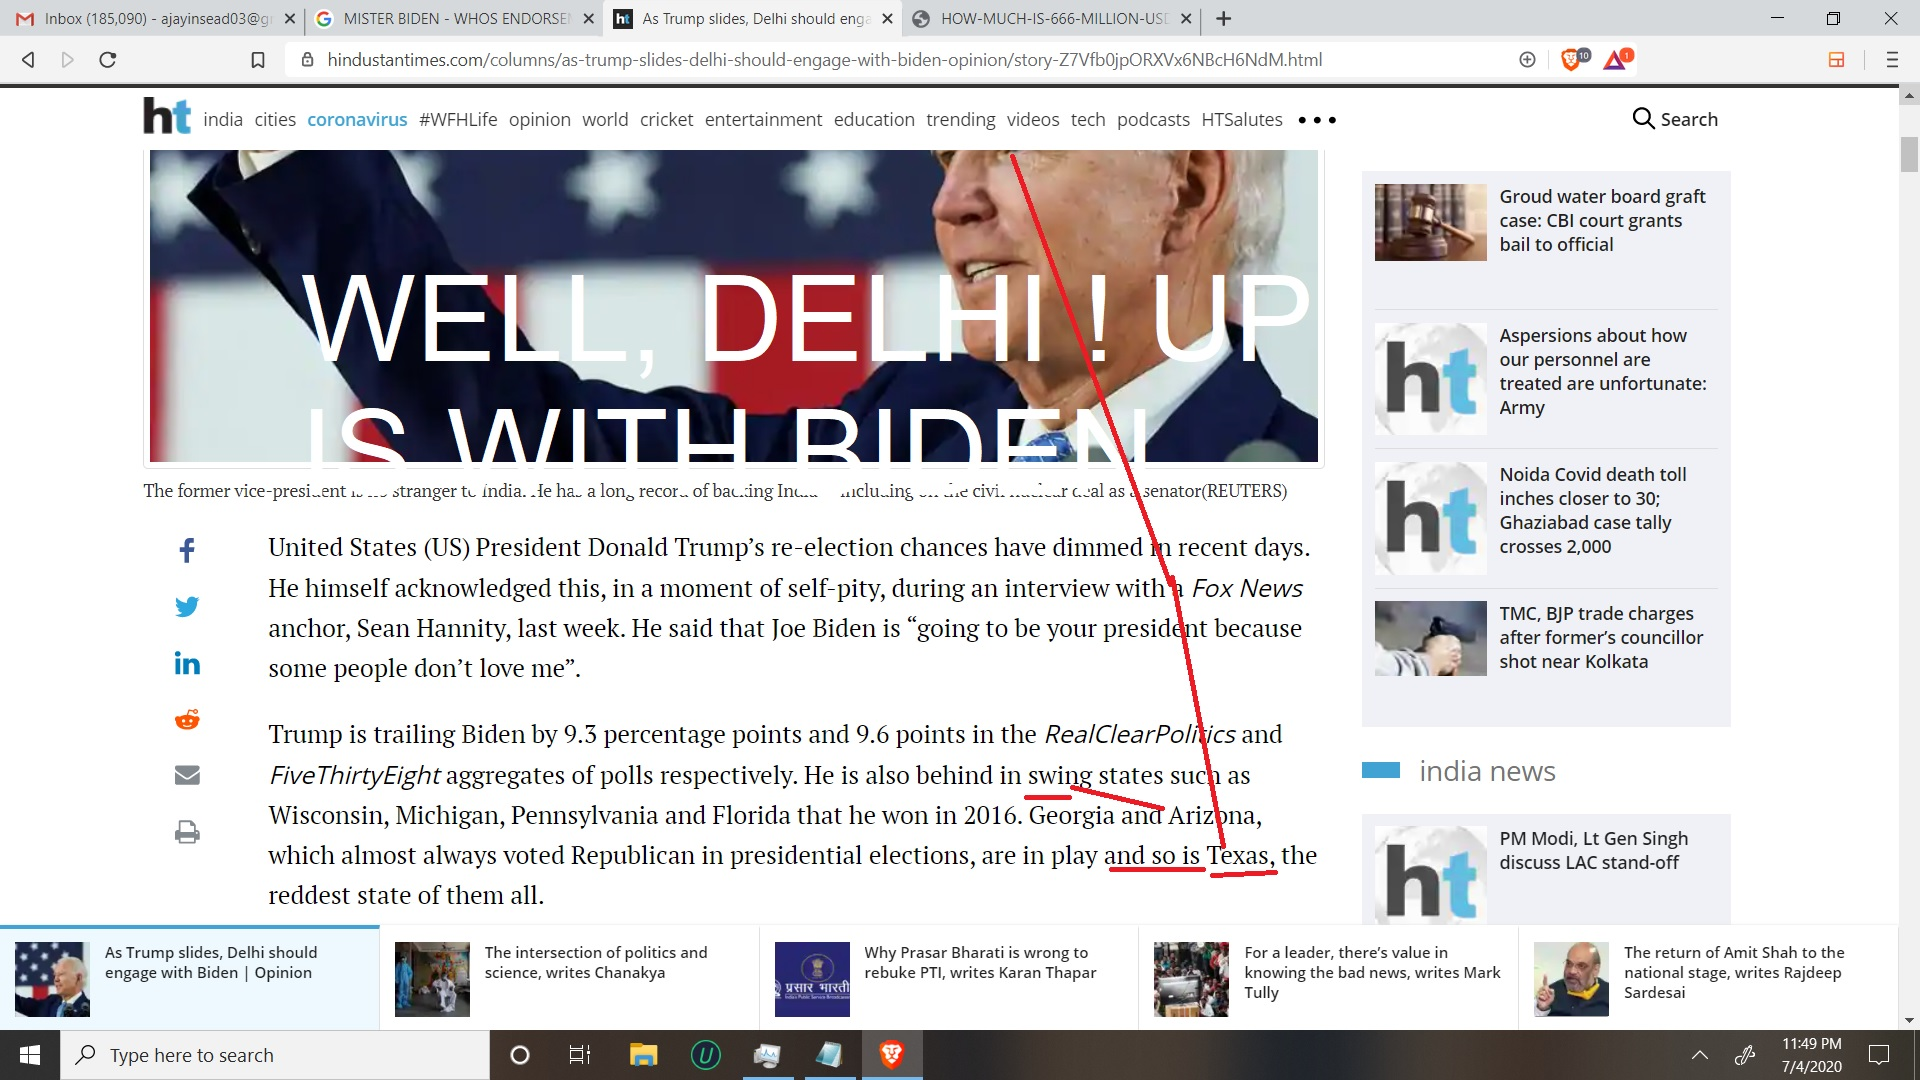 OH BIDEN AND INDIA IN HINDUSTAN TIMES - HELLOMISTER BIDEN SO, DELHI IS THINKING HMM.. WELL NARENDRA IF WE WIN THEN YOU HAVE TWITETR